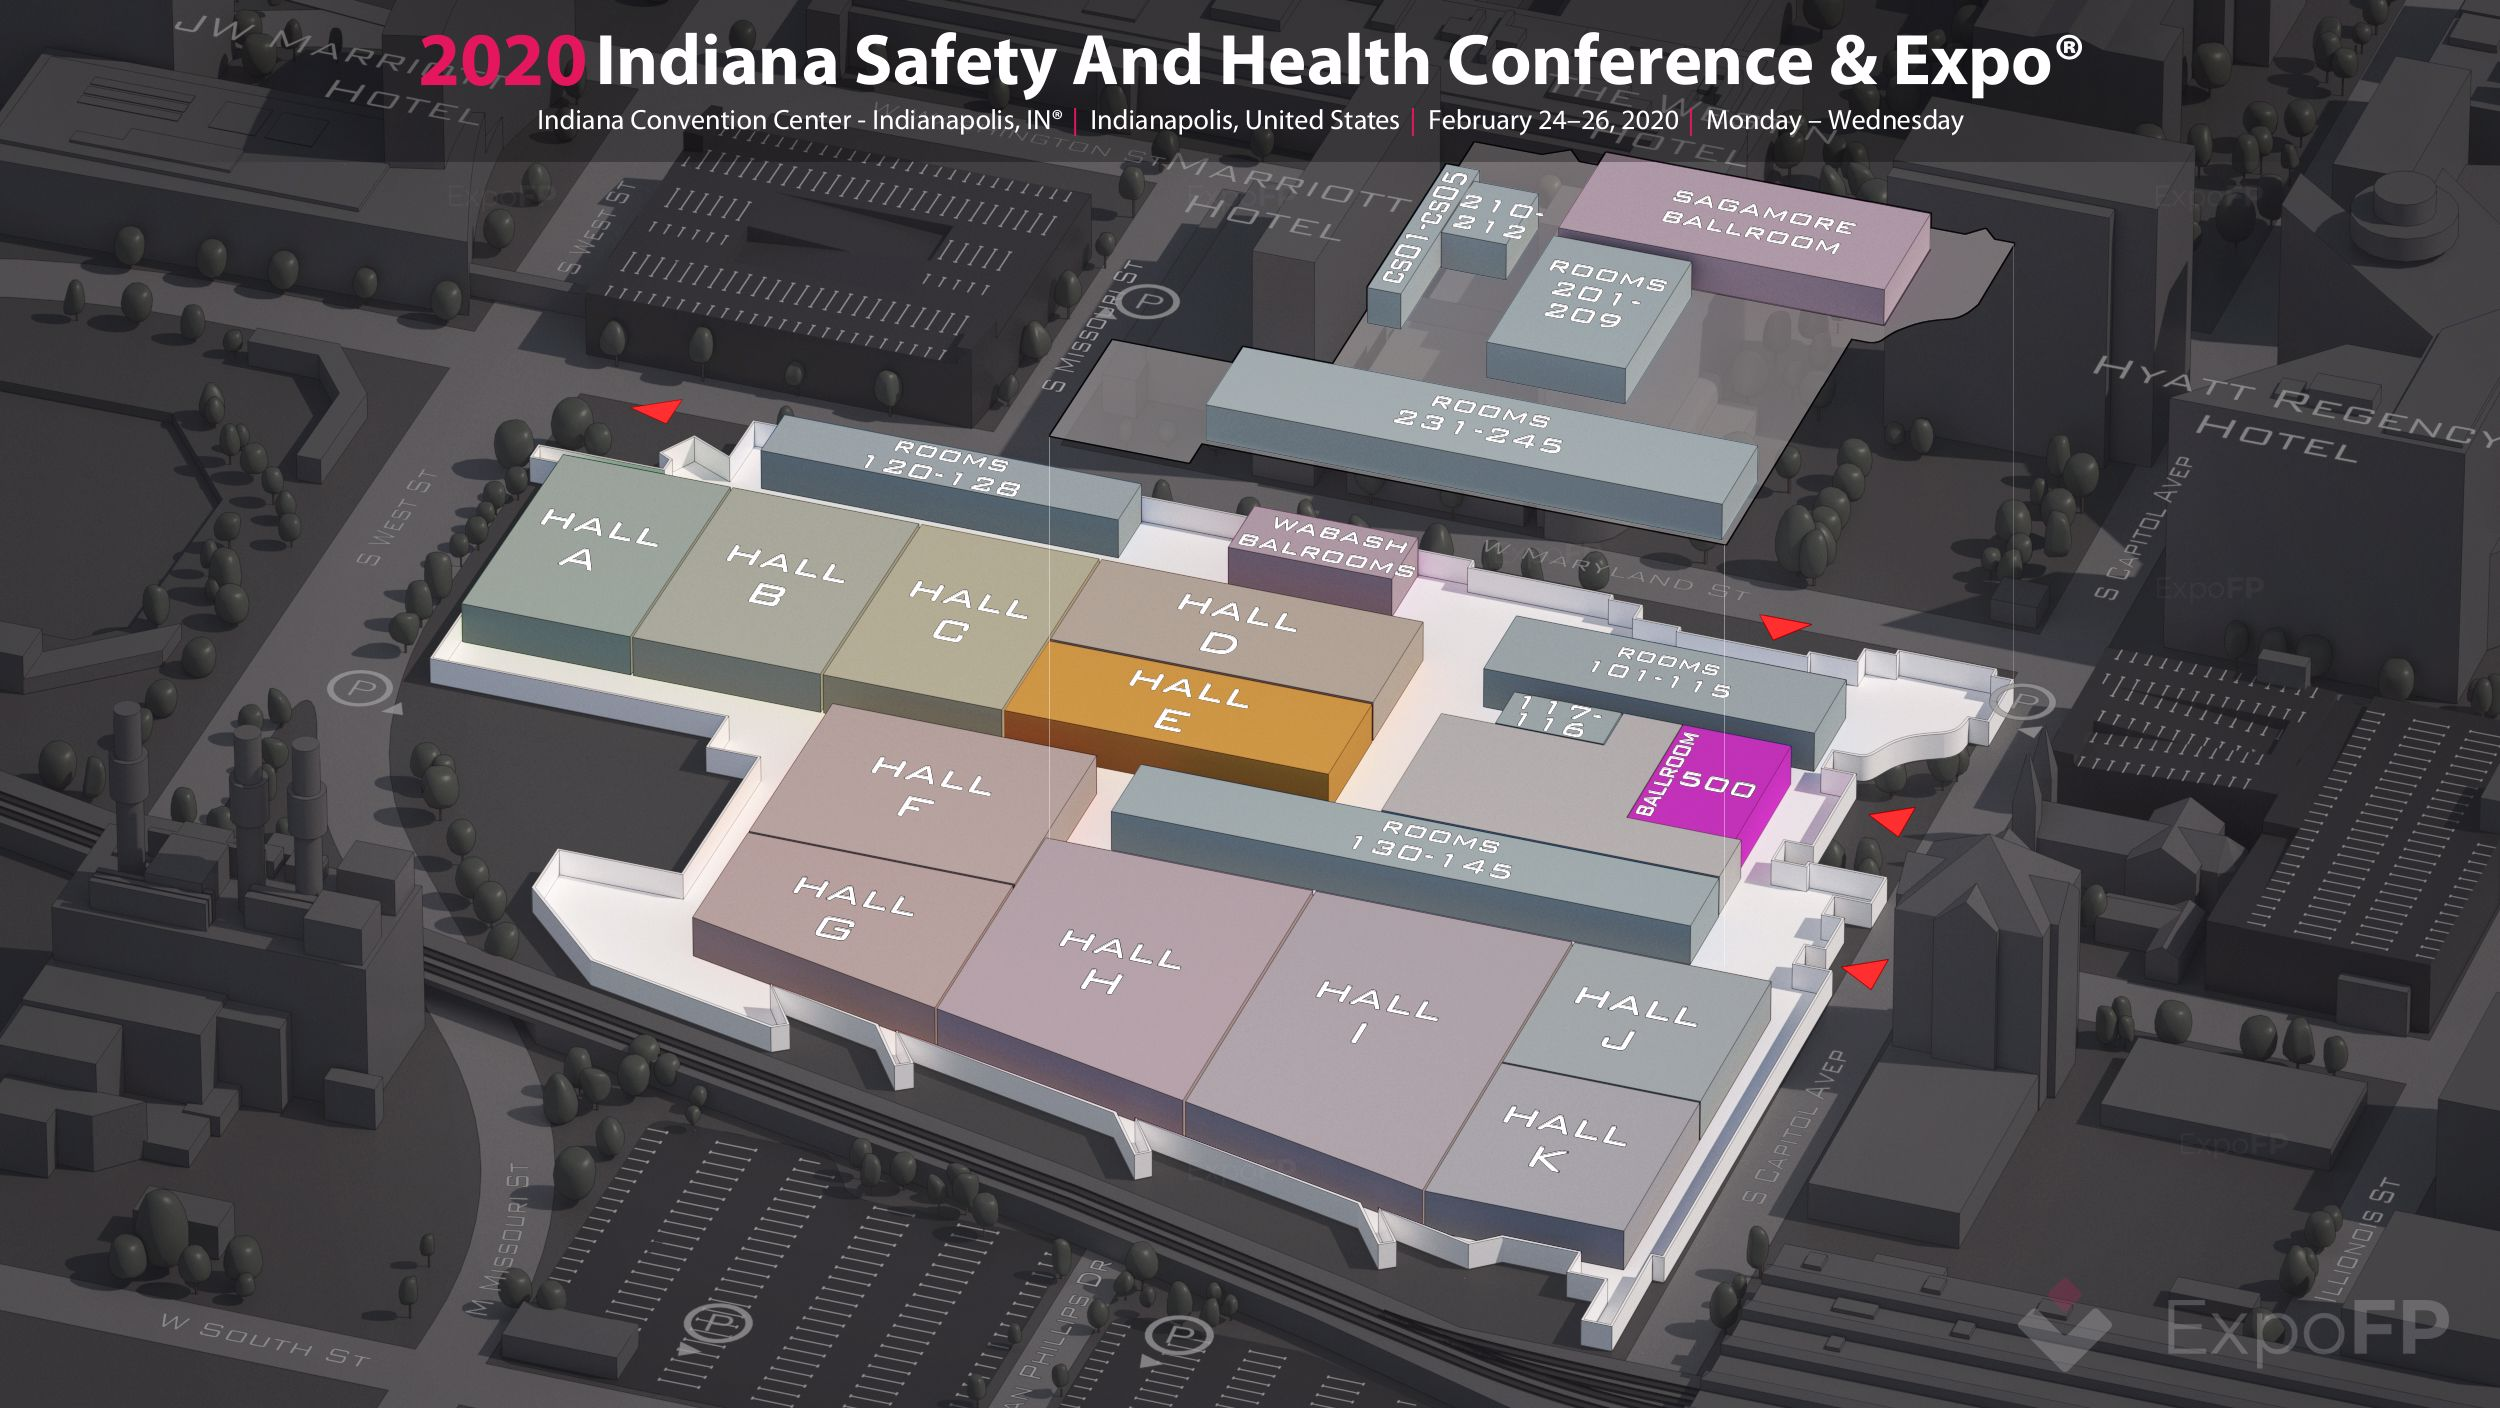 Indianapolis Events March 2020.Indiana Safety And Health Conference Expo 2020 In Indiana